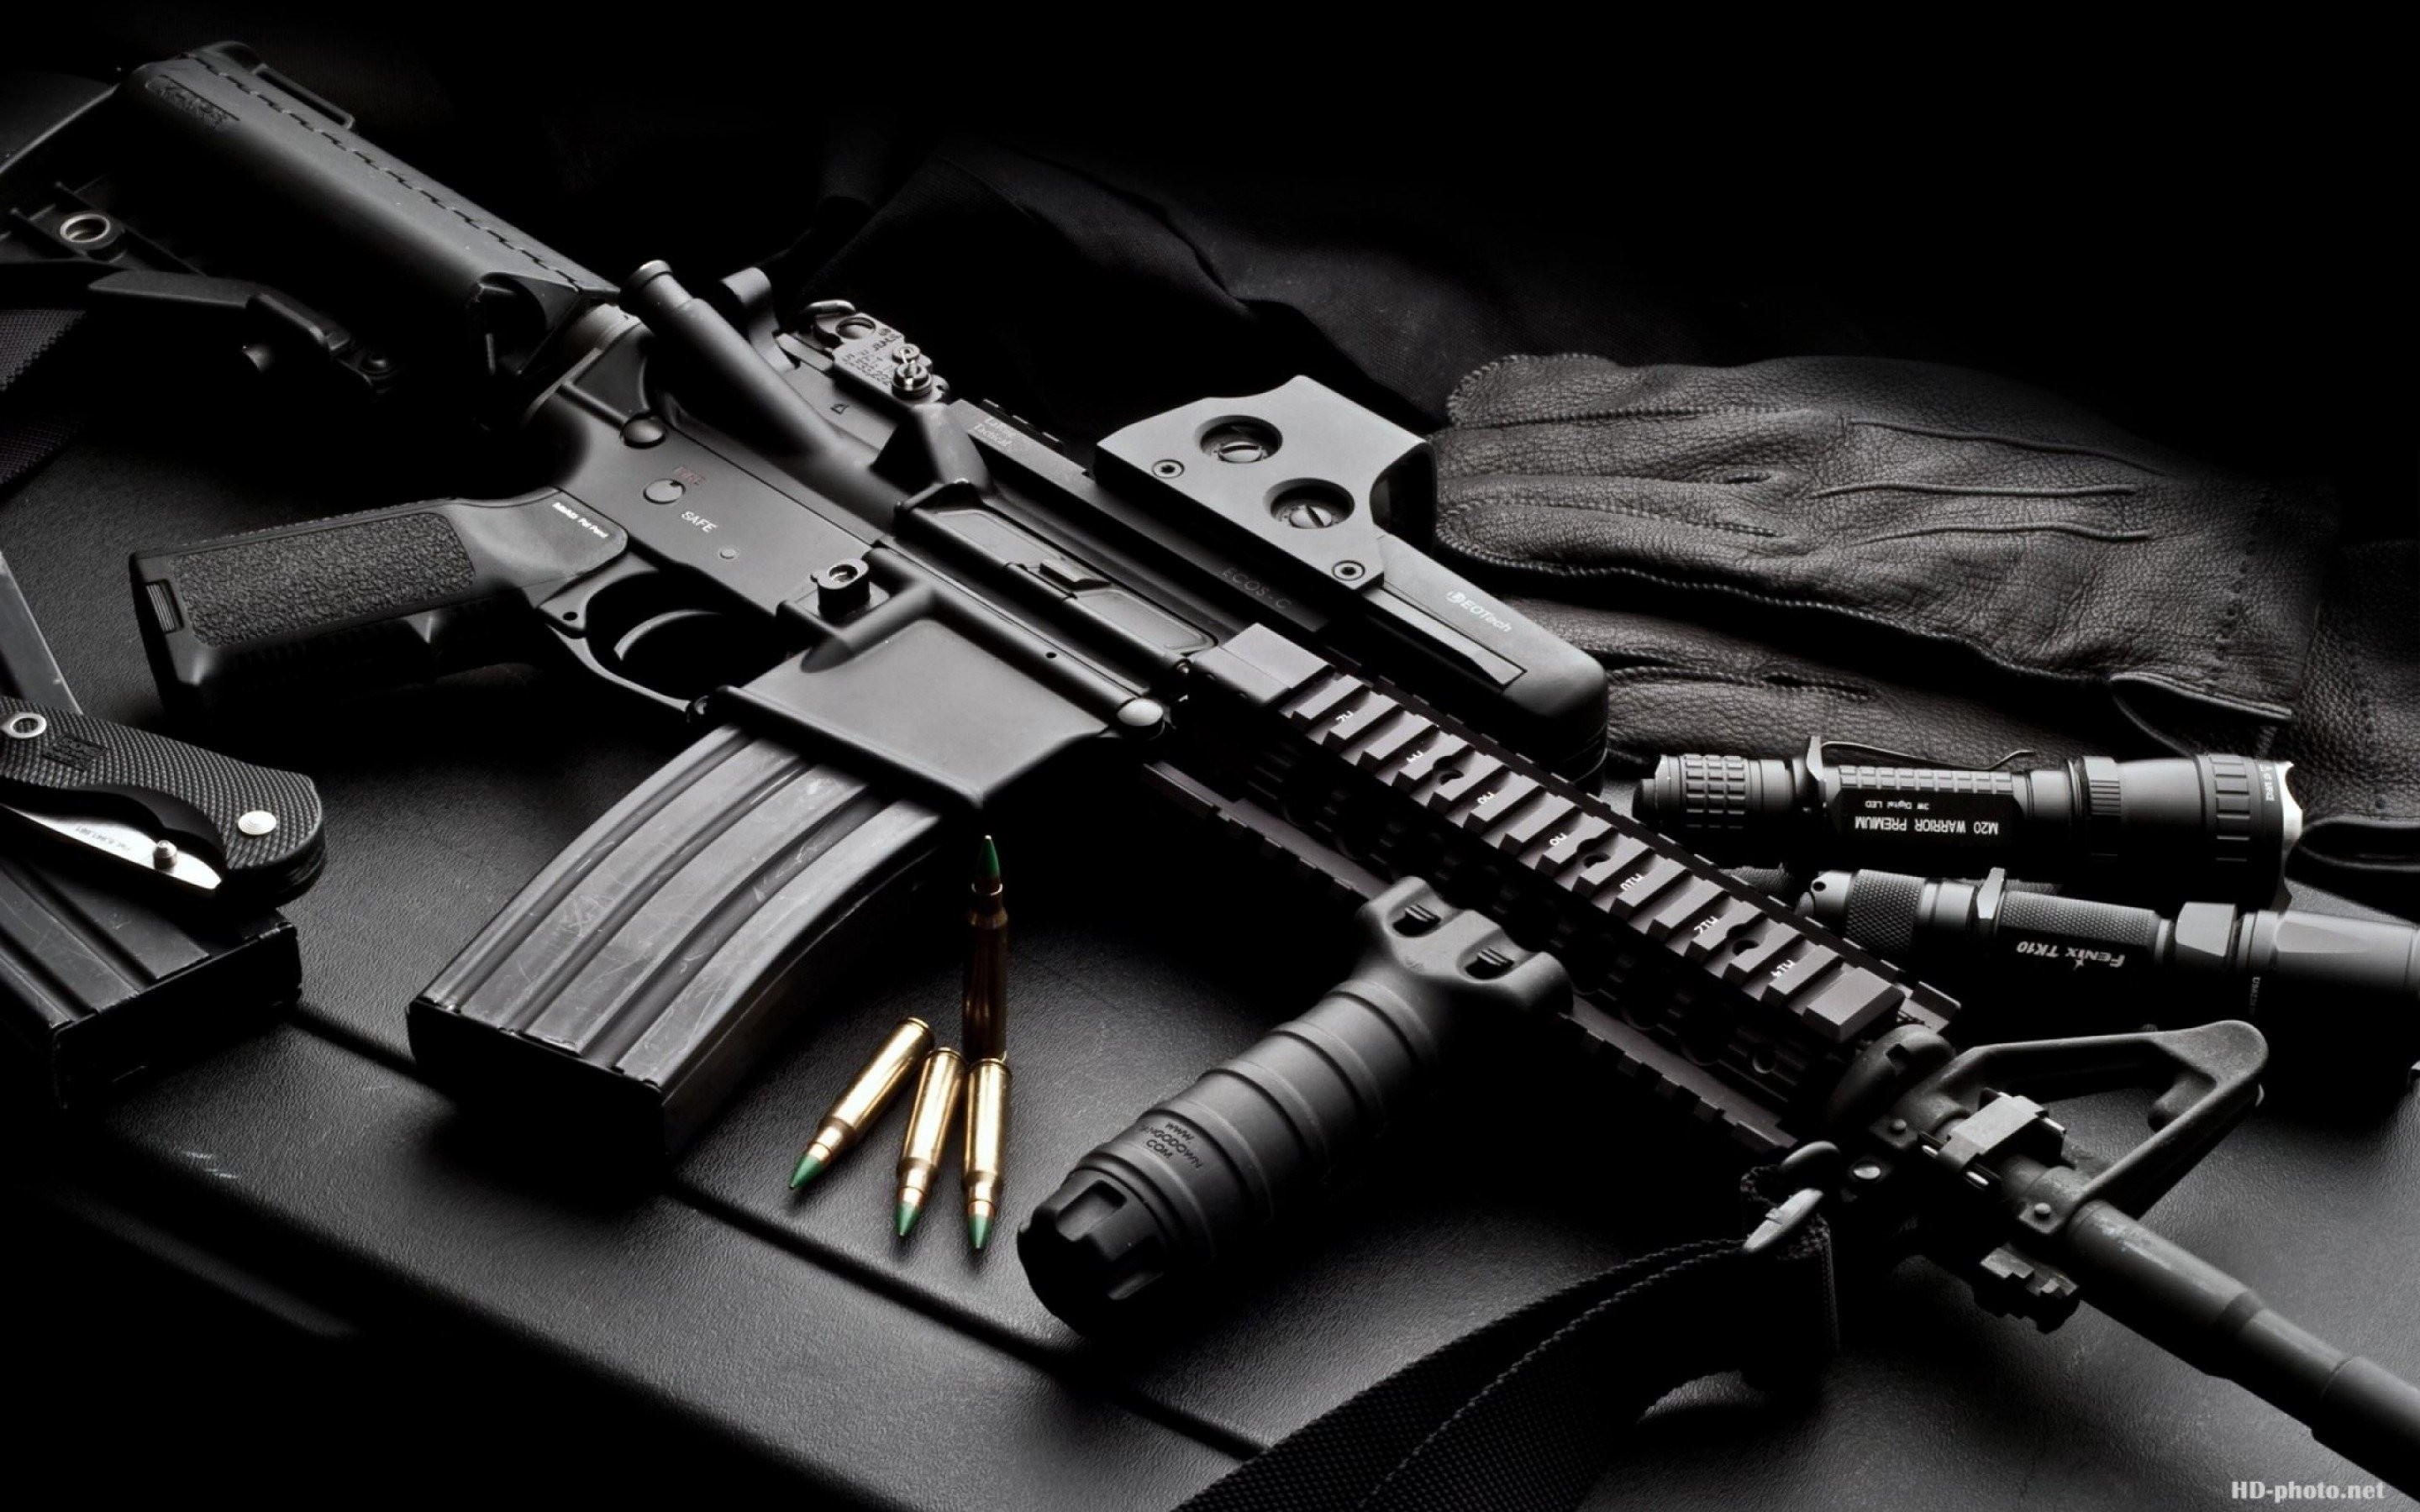 2880x1800 Airsoft Team Military Soldier Police Weapon Gun F Wallpaper